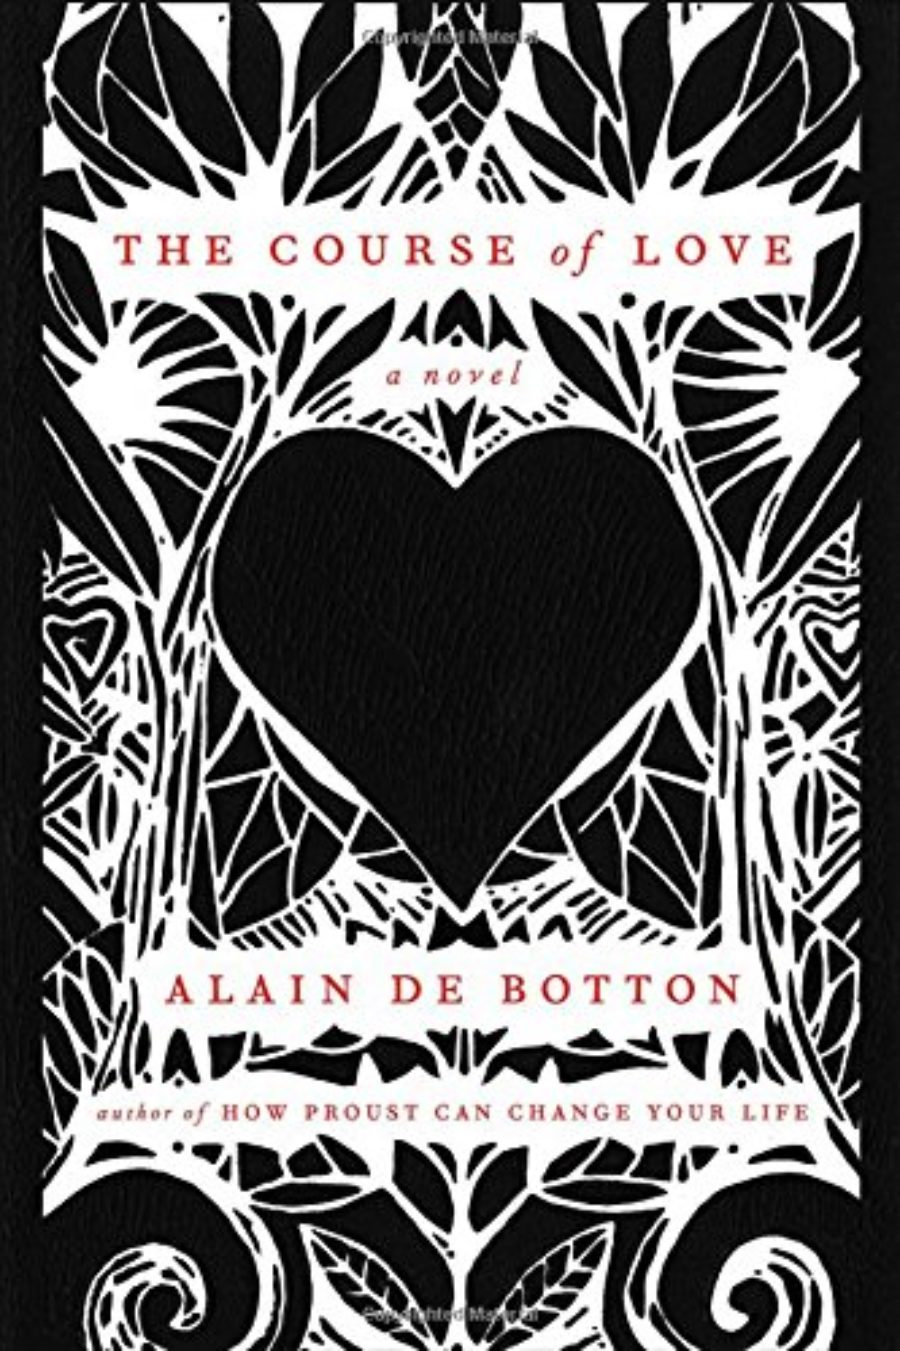 Alain de Botton — The True Hard Work of Love and Relationships - The